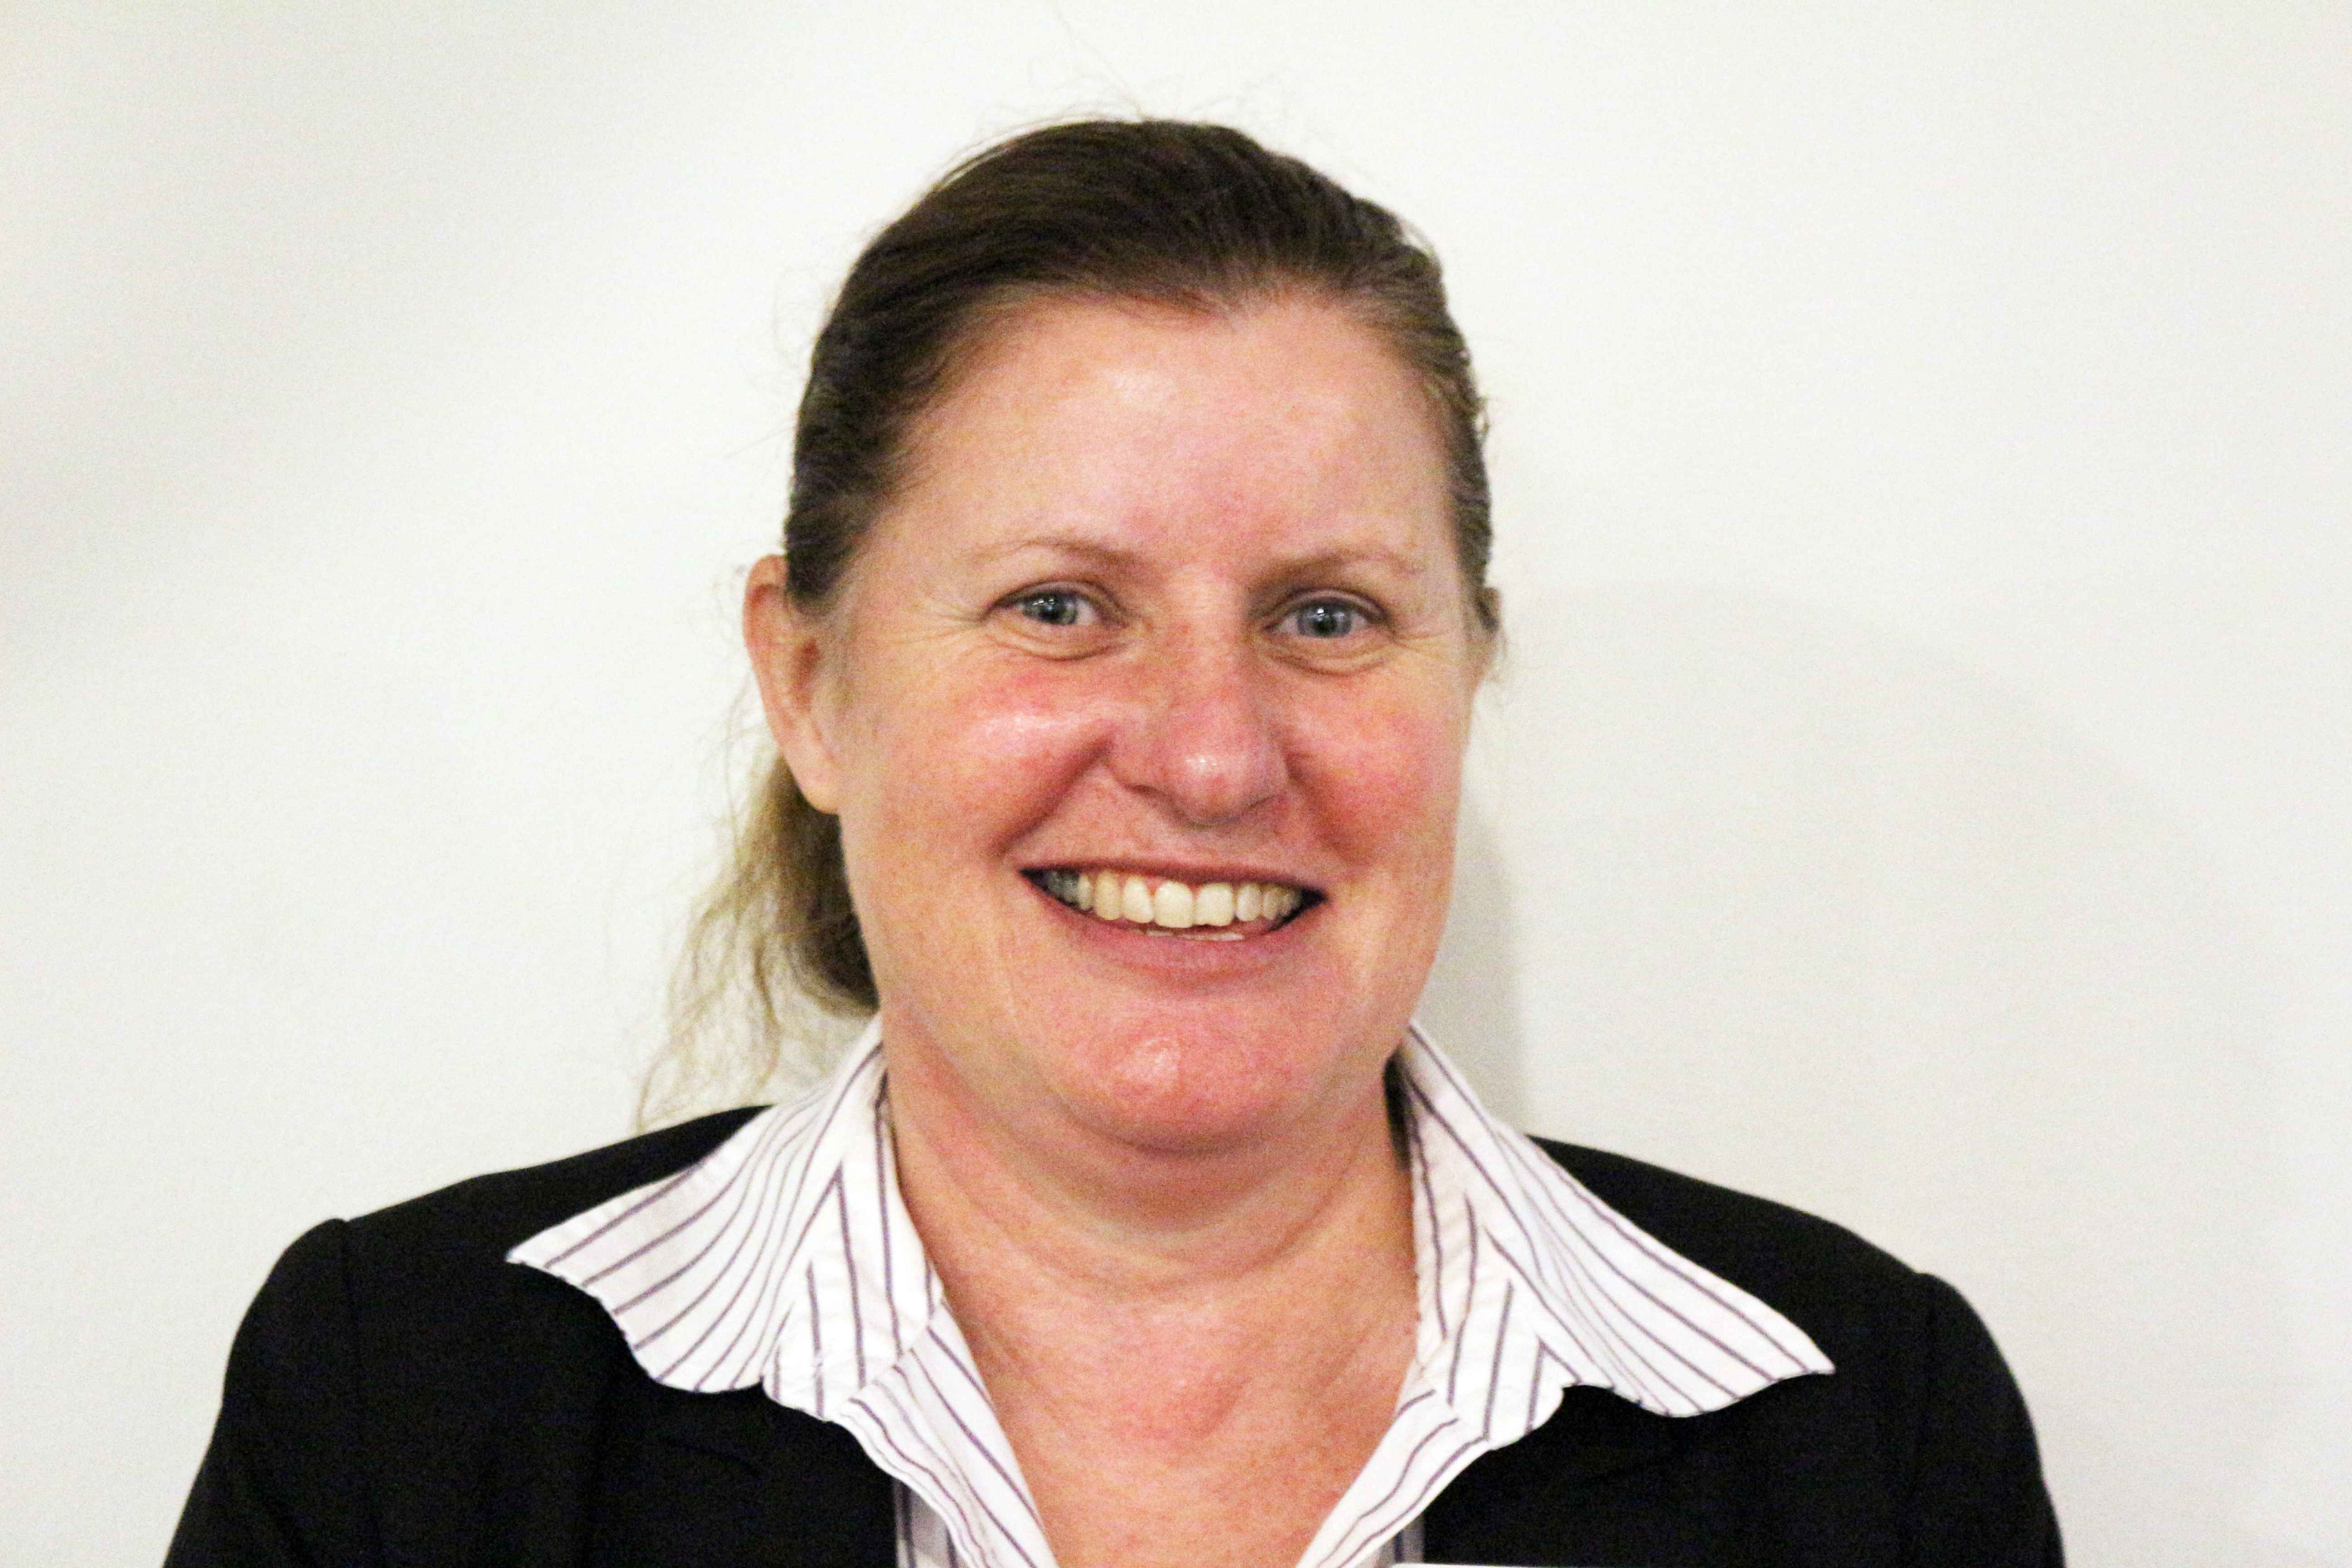 Deborah Payne is the Facility Manager at Ridgeview Aged Care.